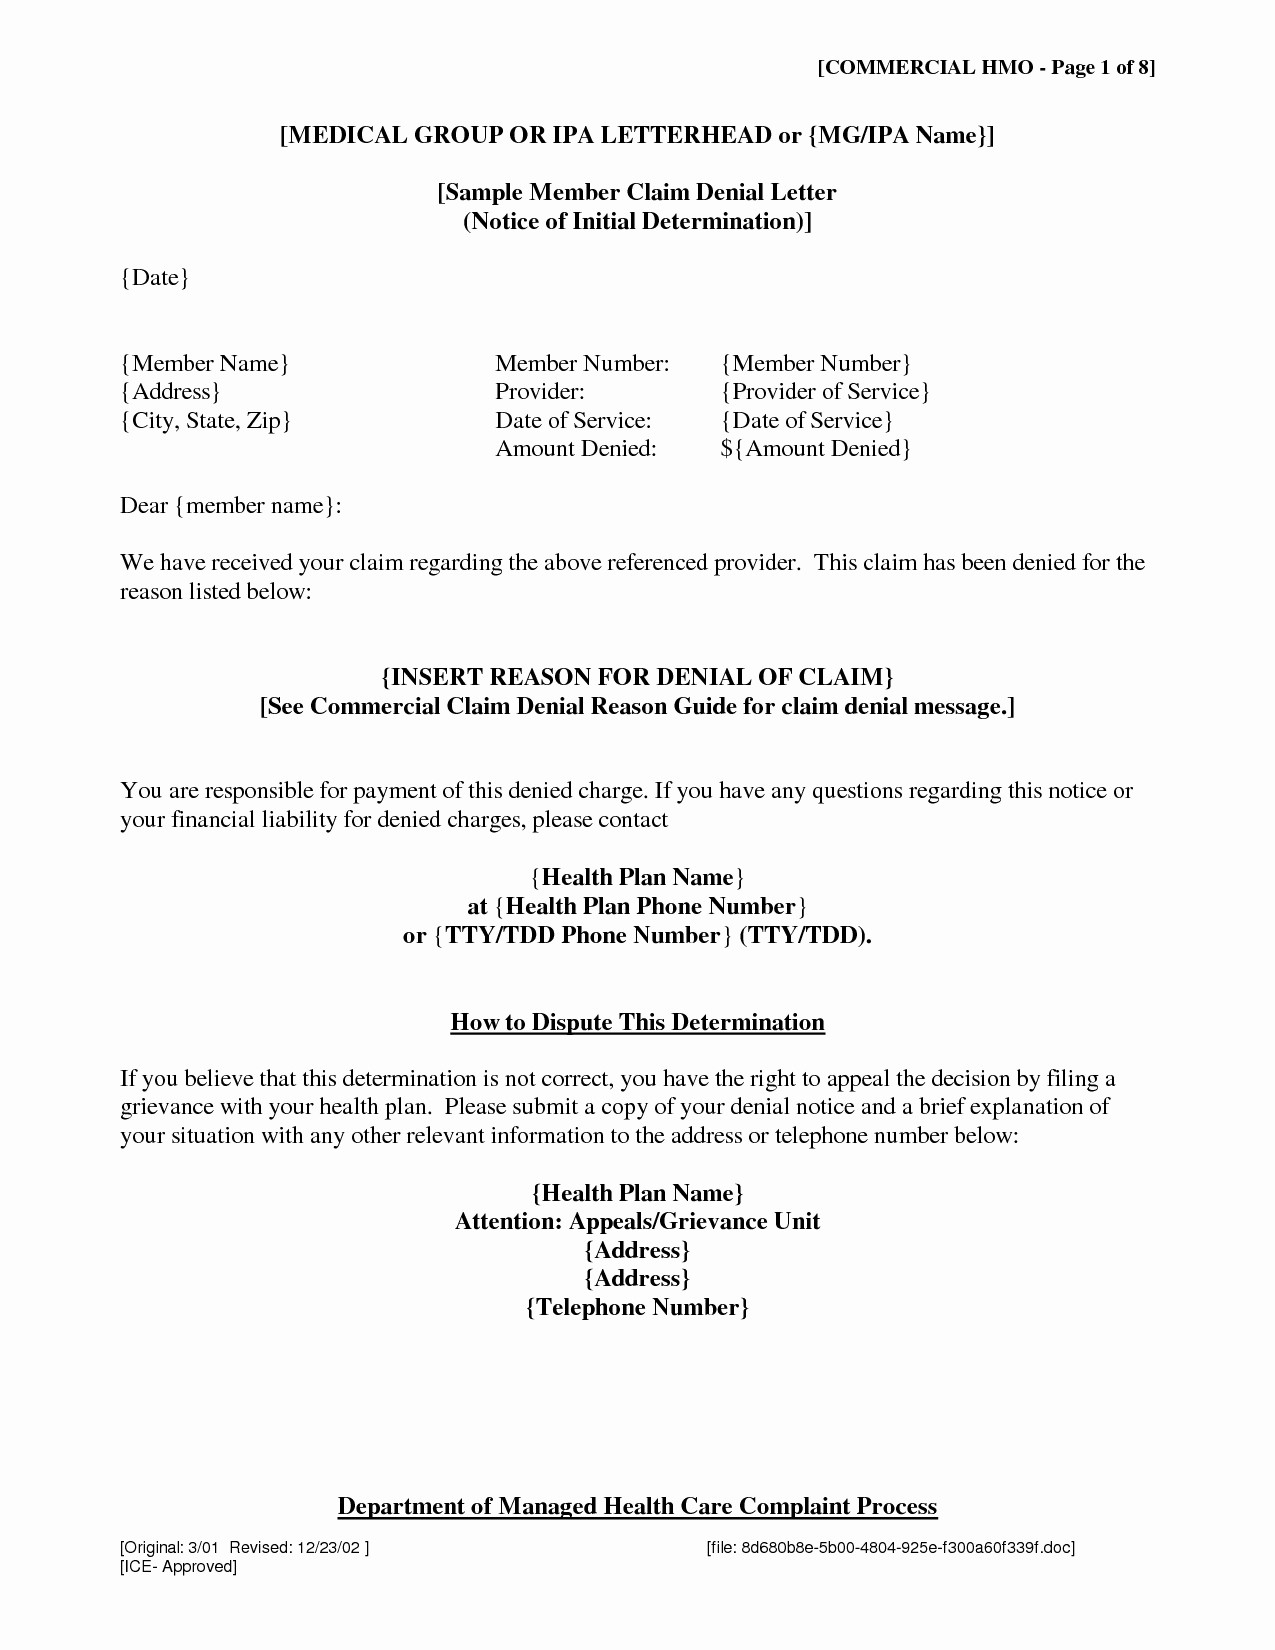 Insurance Demand Letter Template - Letter Template for Ppi Claim Copy Gallery Title Insurance Claim